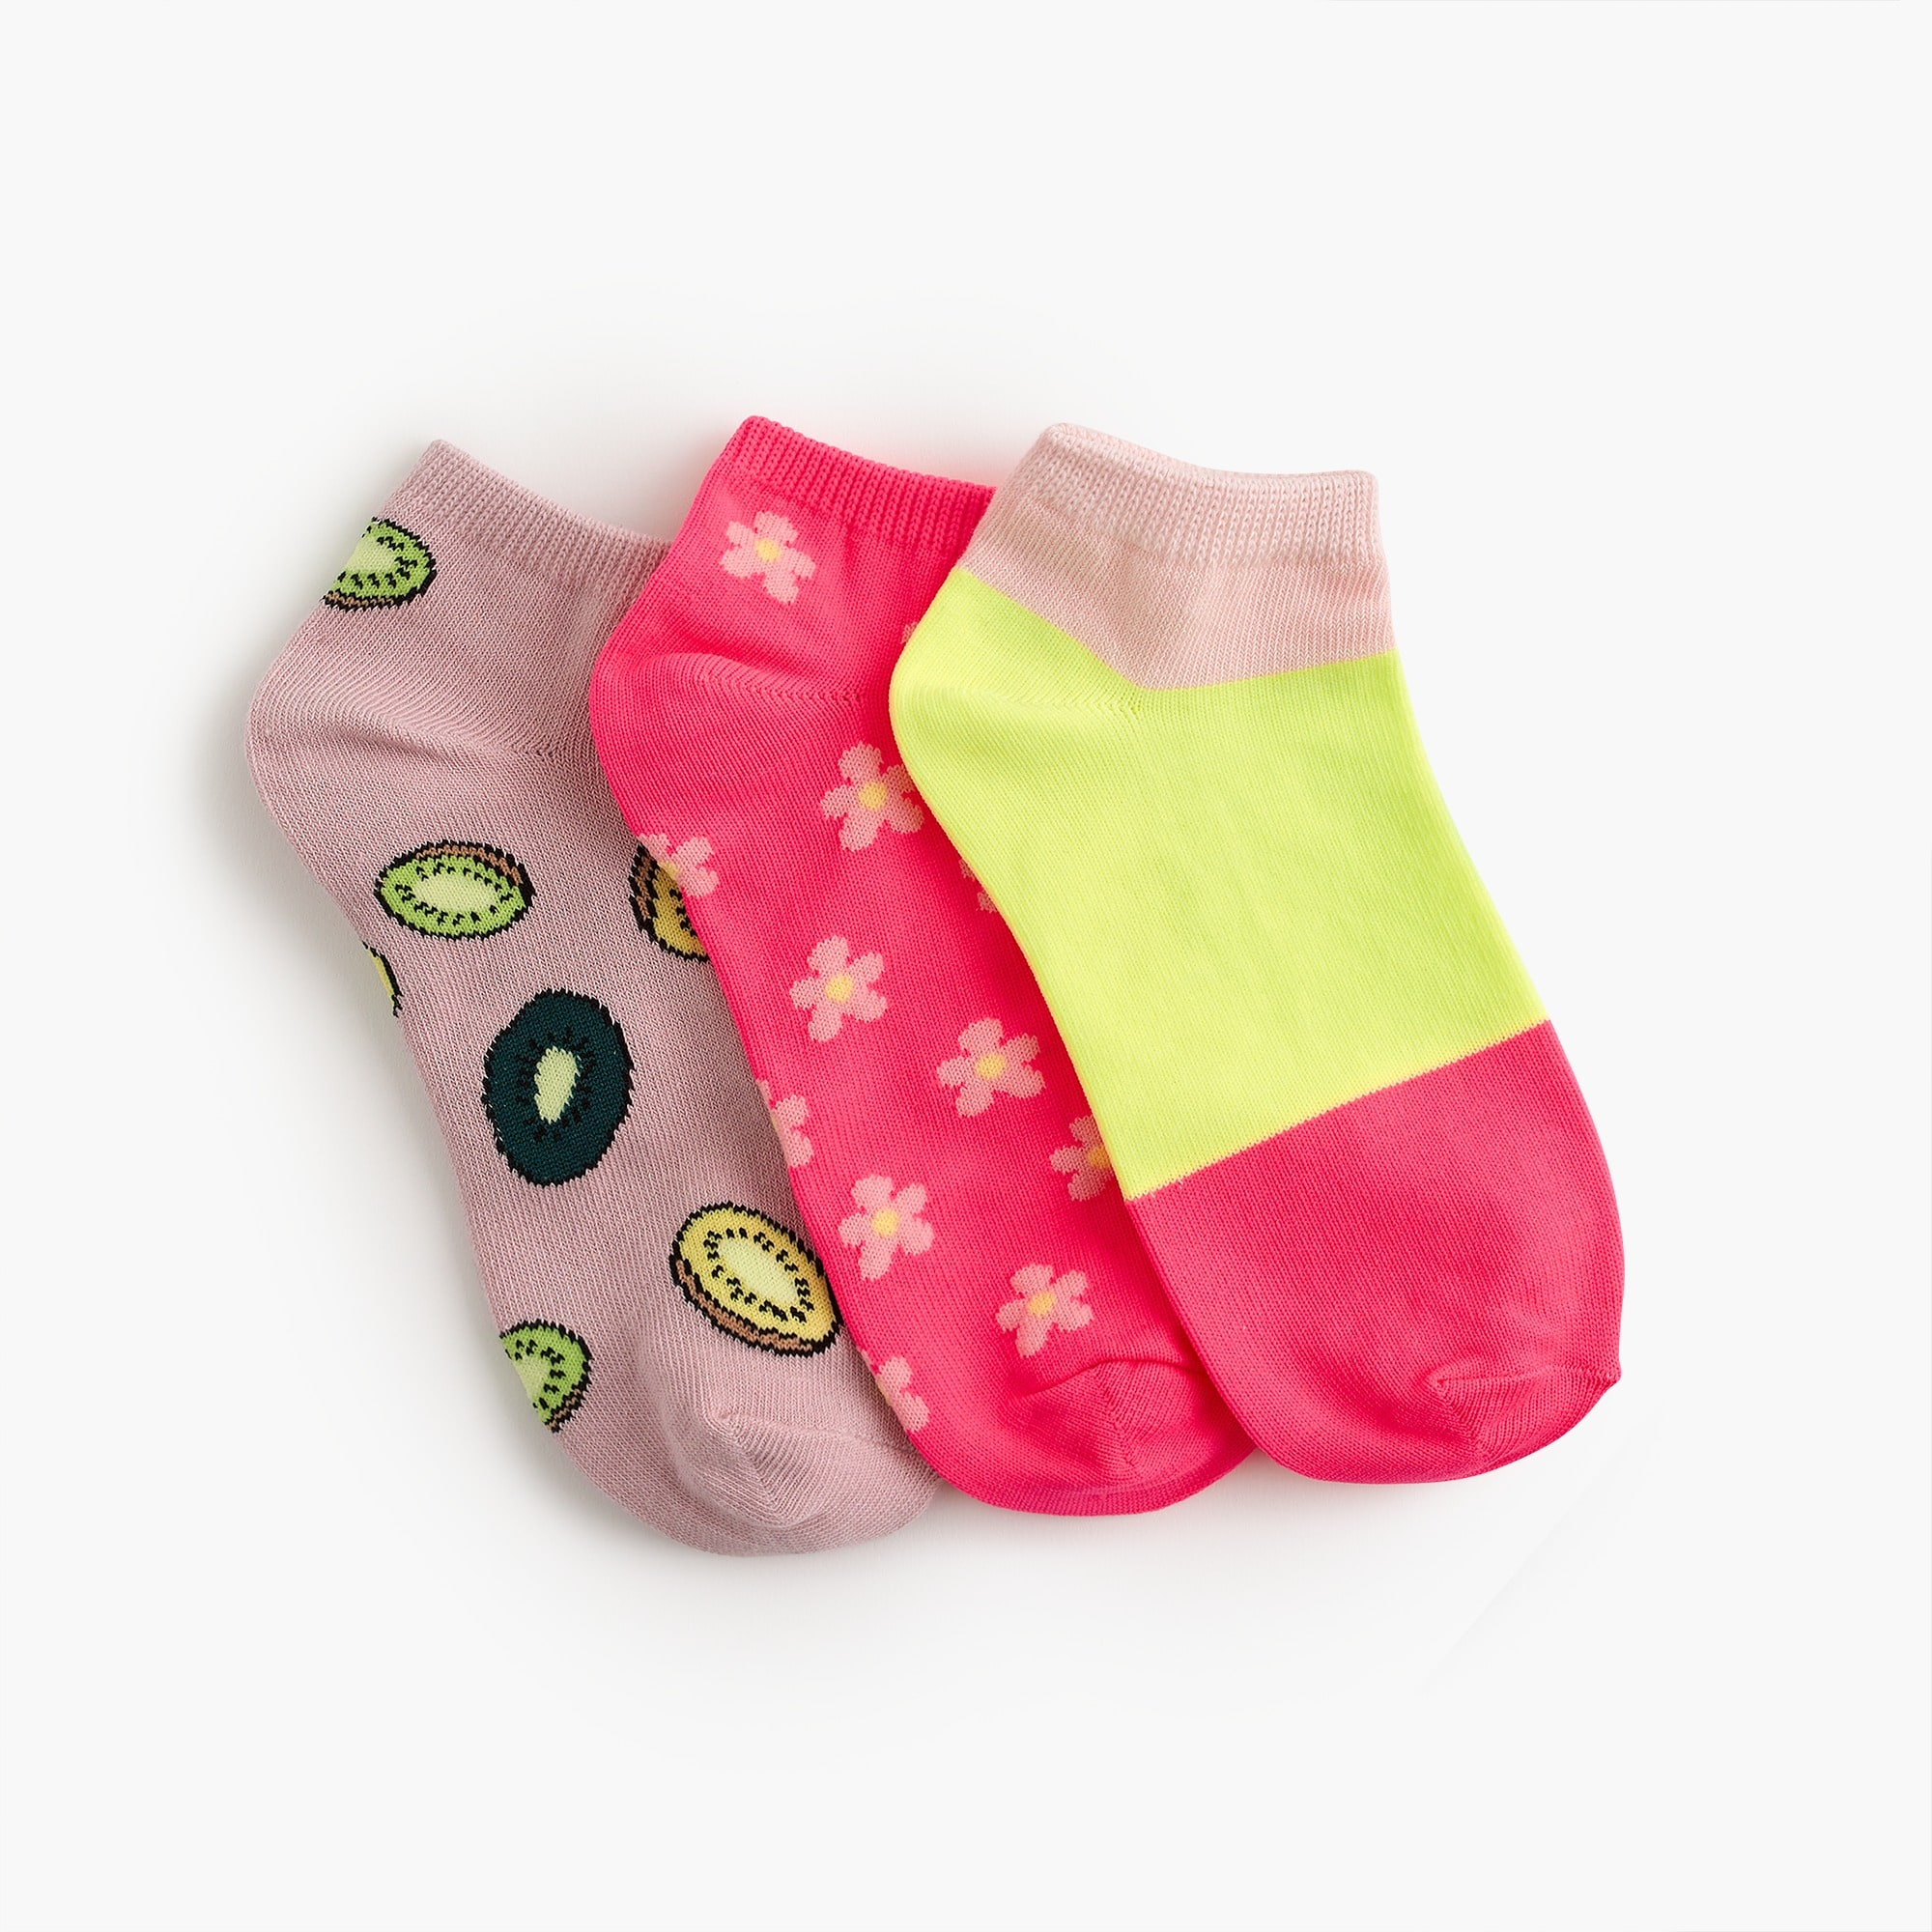 Image 1 for Girls' ankle socks three-pack